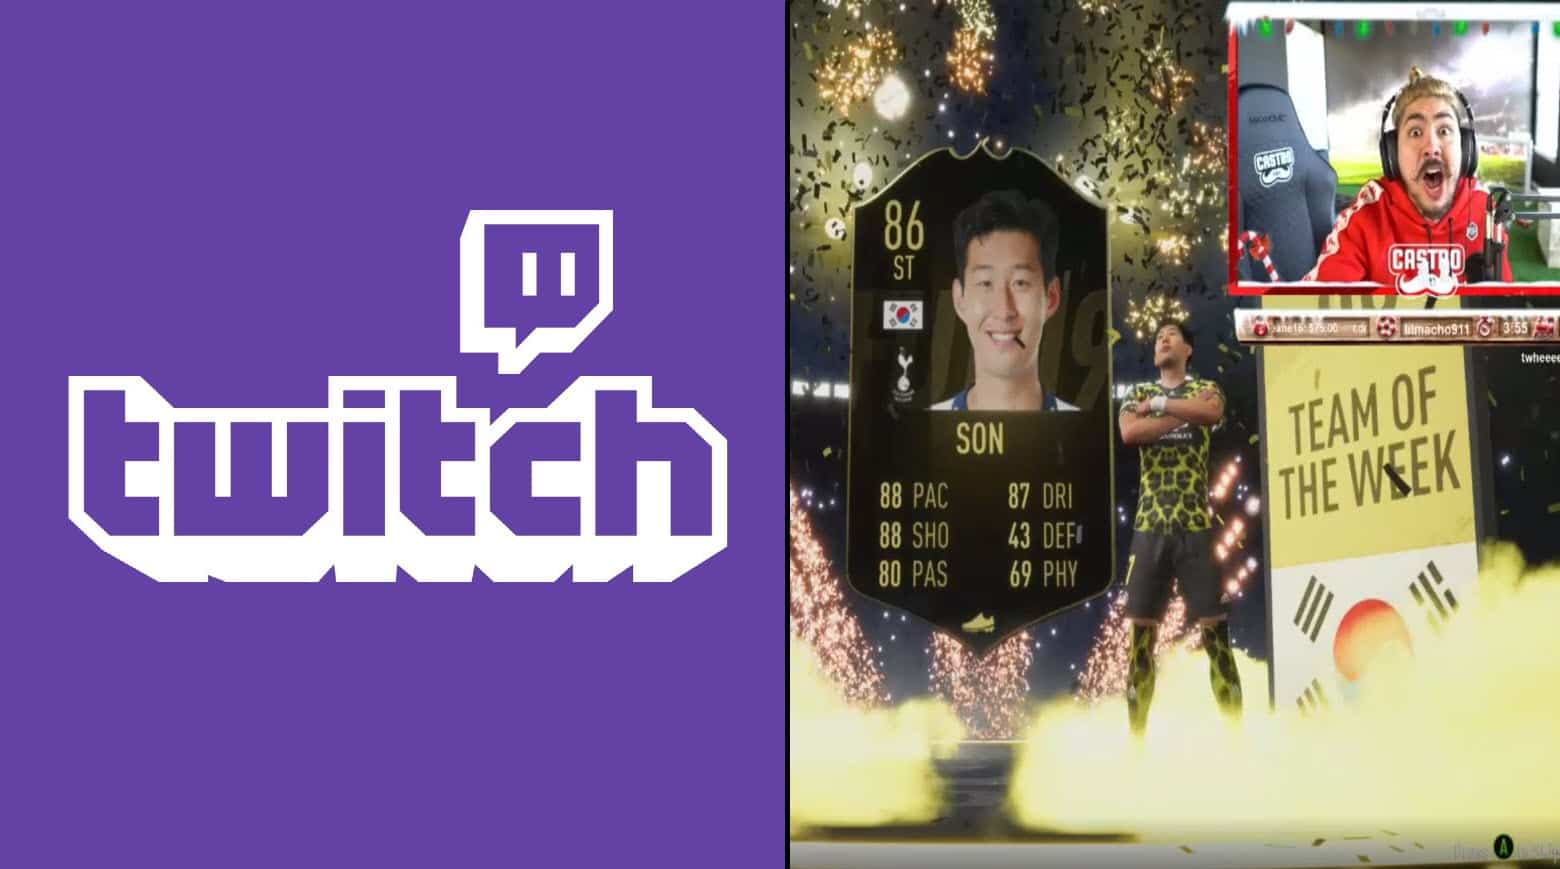 Castro1021 Esports Fifa 19 unpacked TOTW Son due to fan's suggestion